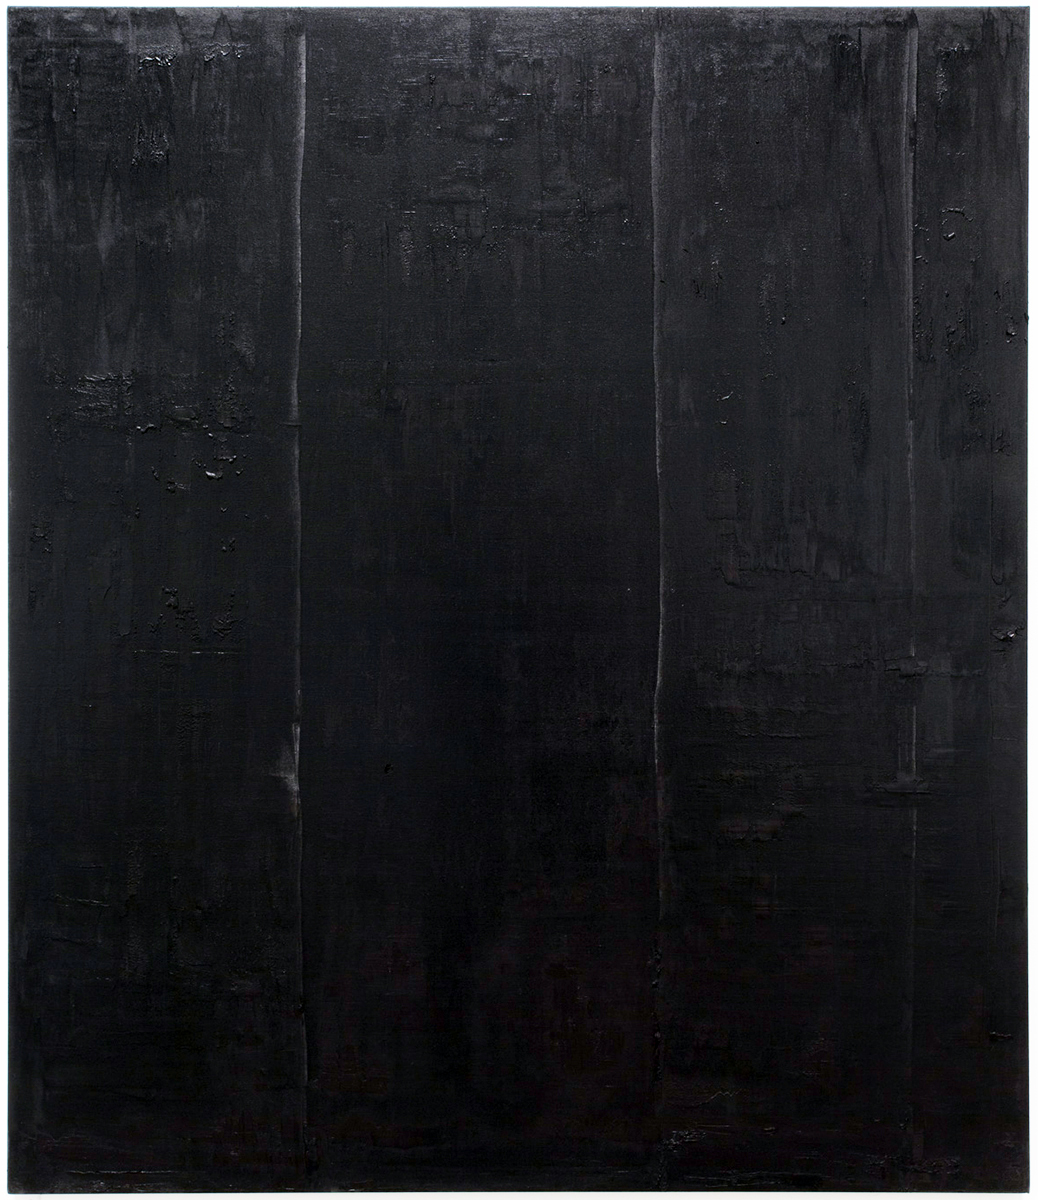 Untitled black monochrome painting (9.10.PBk9.CI77267/PBk11.Fe3O4) from the Frequency10. series. Oil, grit, graphite on canvas, 213.36cm x 182.88cm (84 inches x 72 inches), 2016-2017.